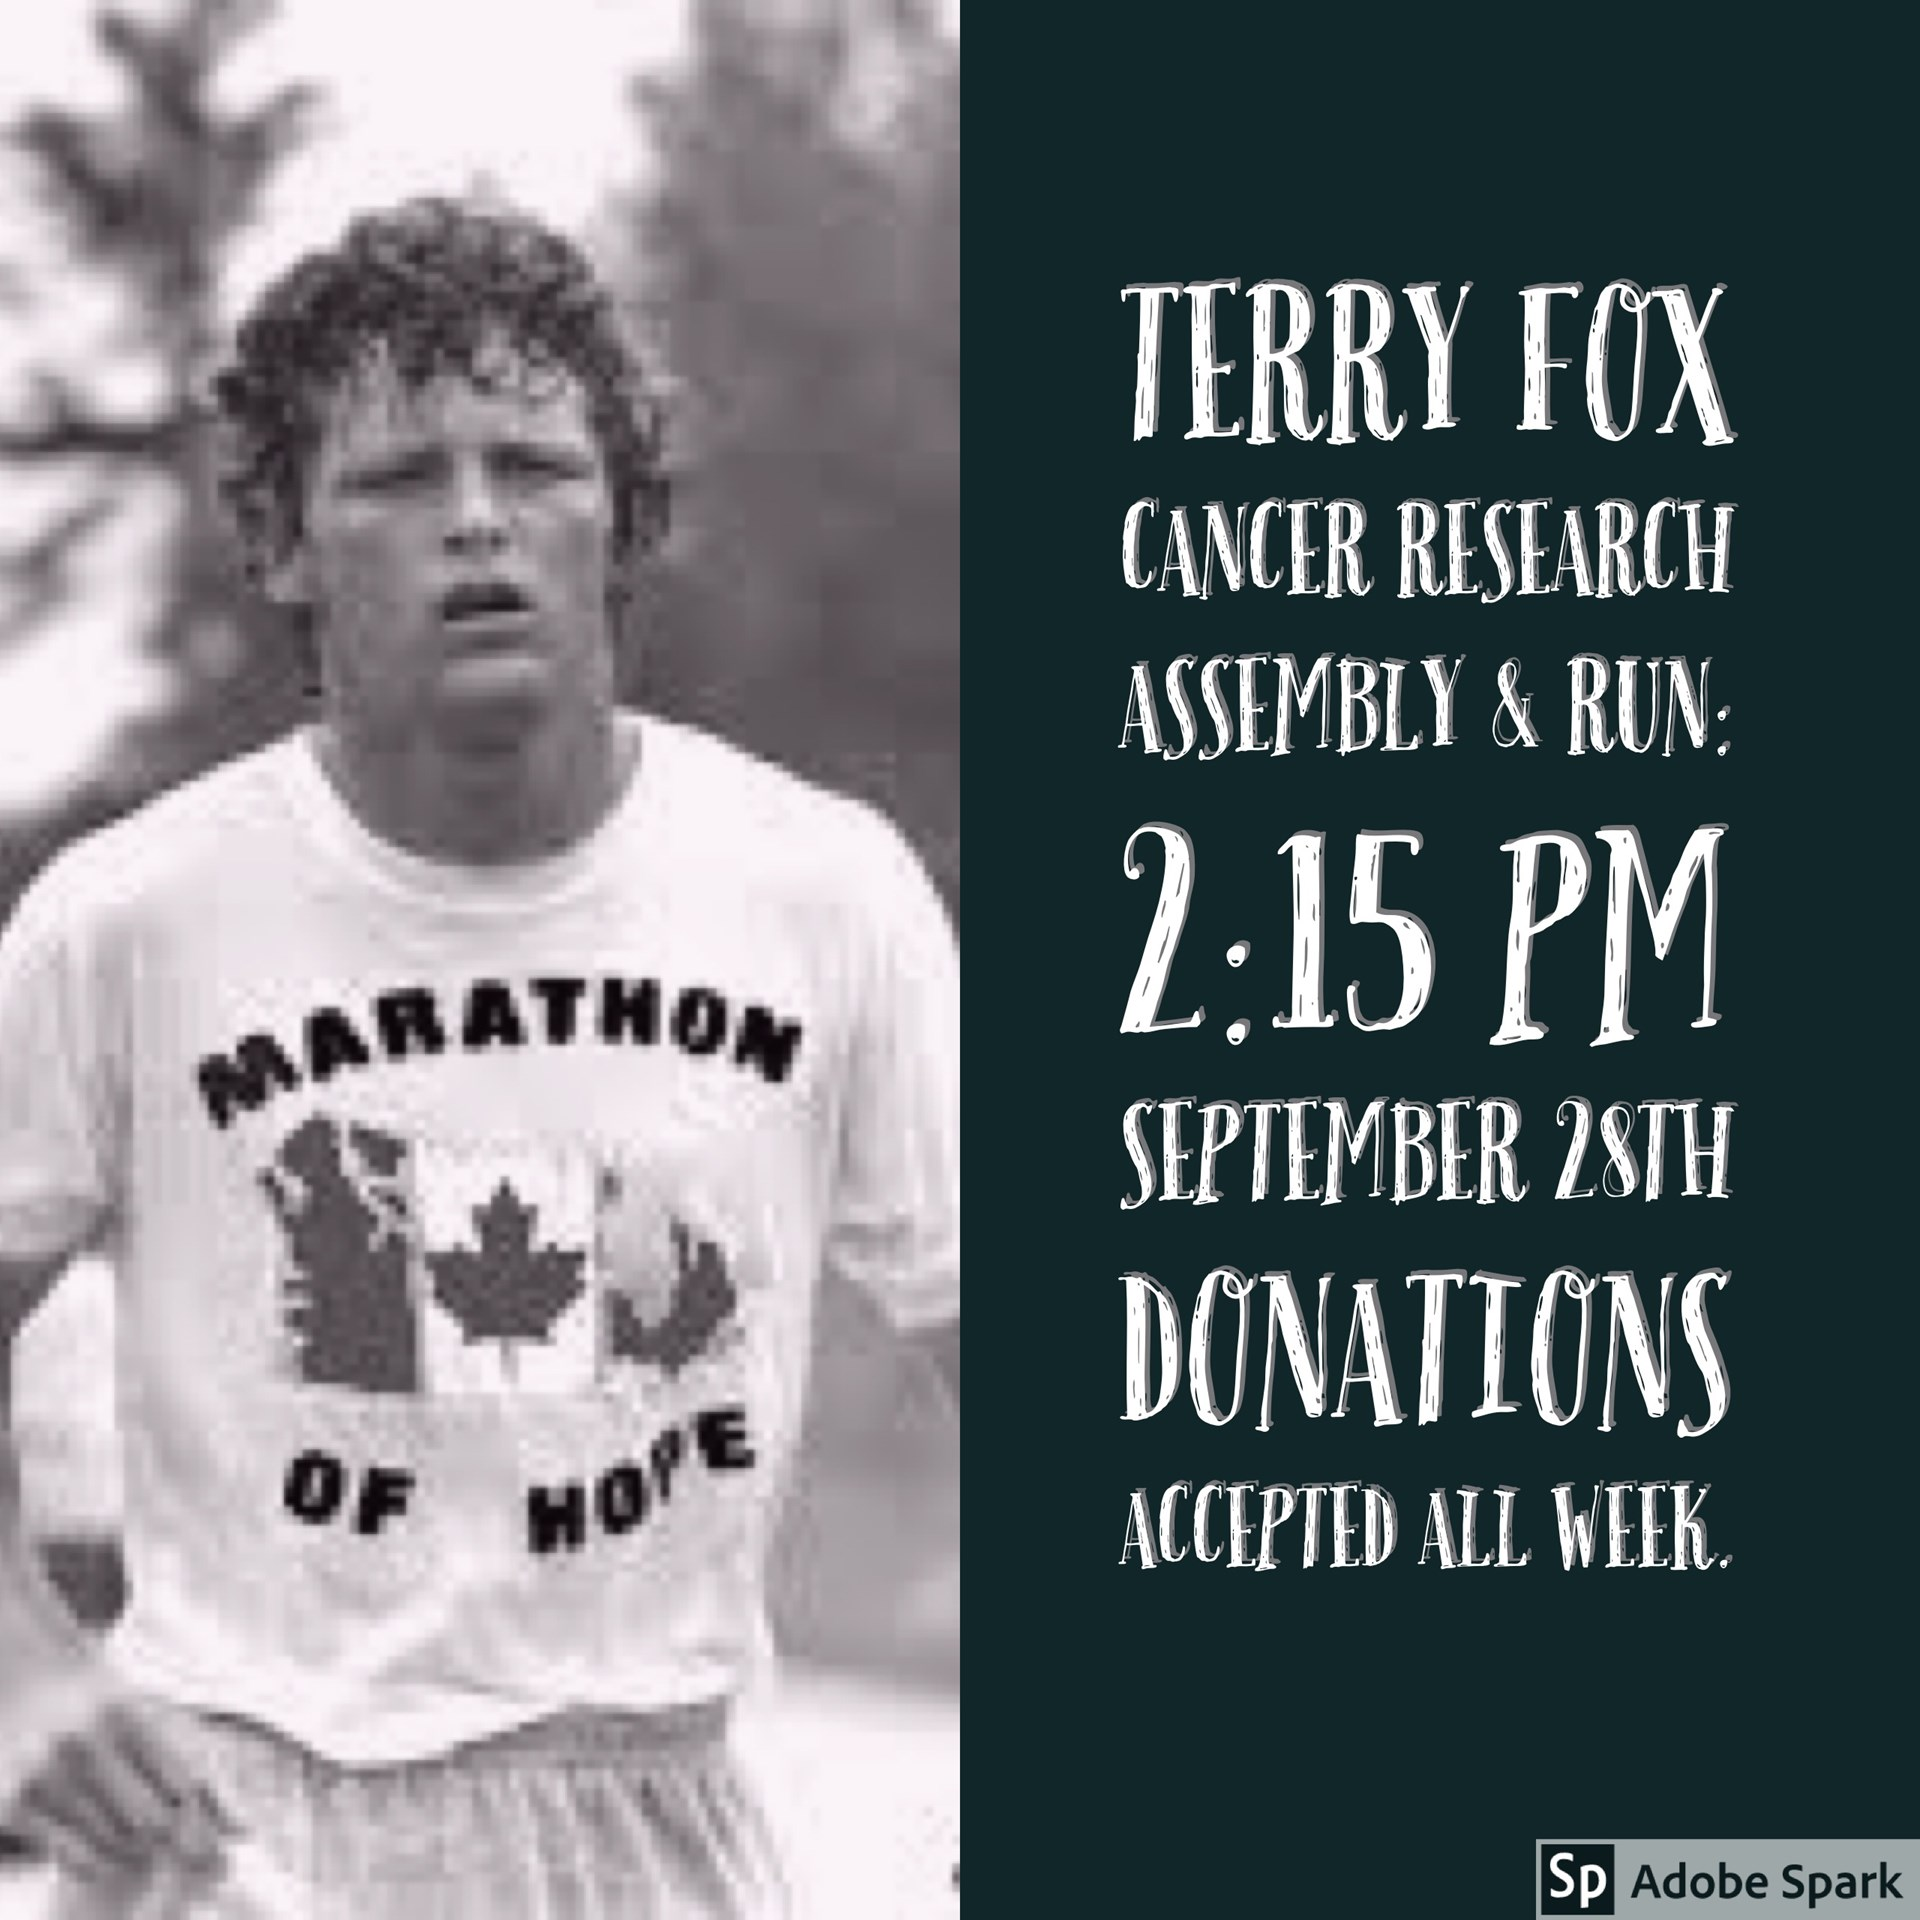 Terry Fox Announcement.JPG